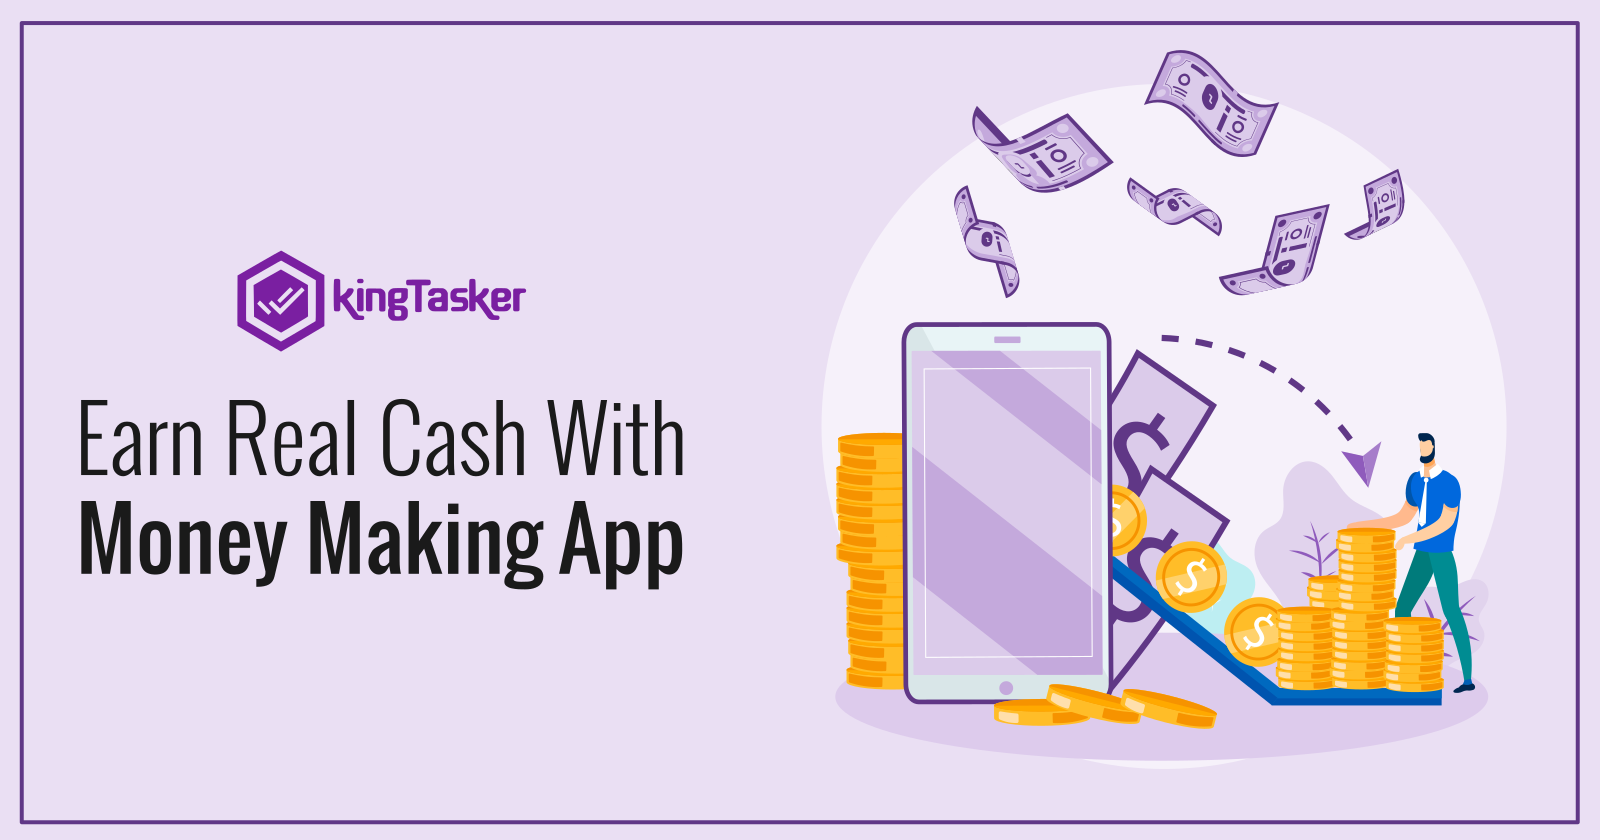 Earn Real Cash With Money Making App